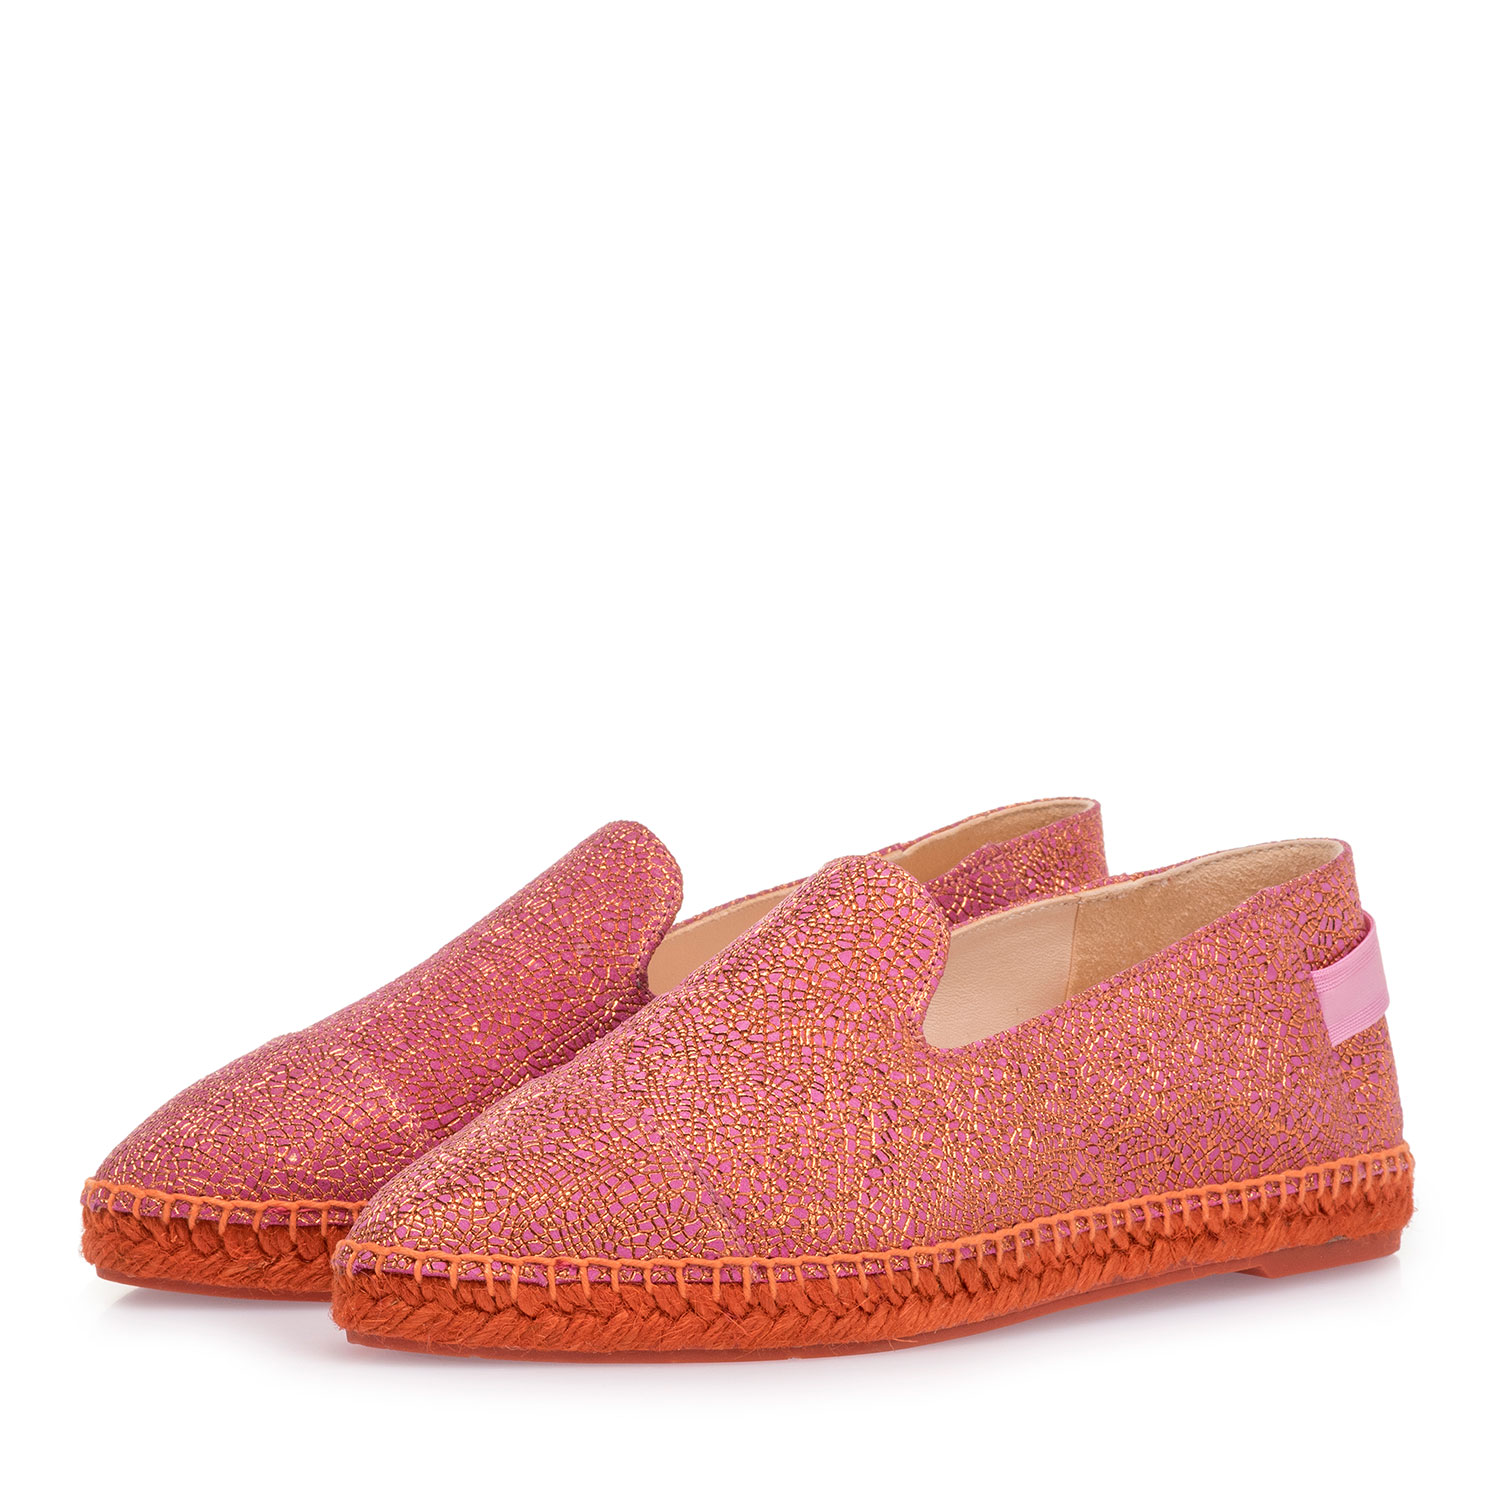 85420/00 - Pink leather espadrilles with metallic print